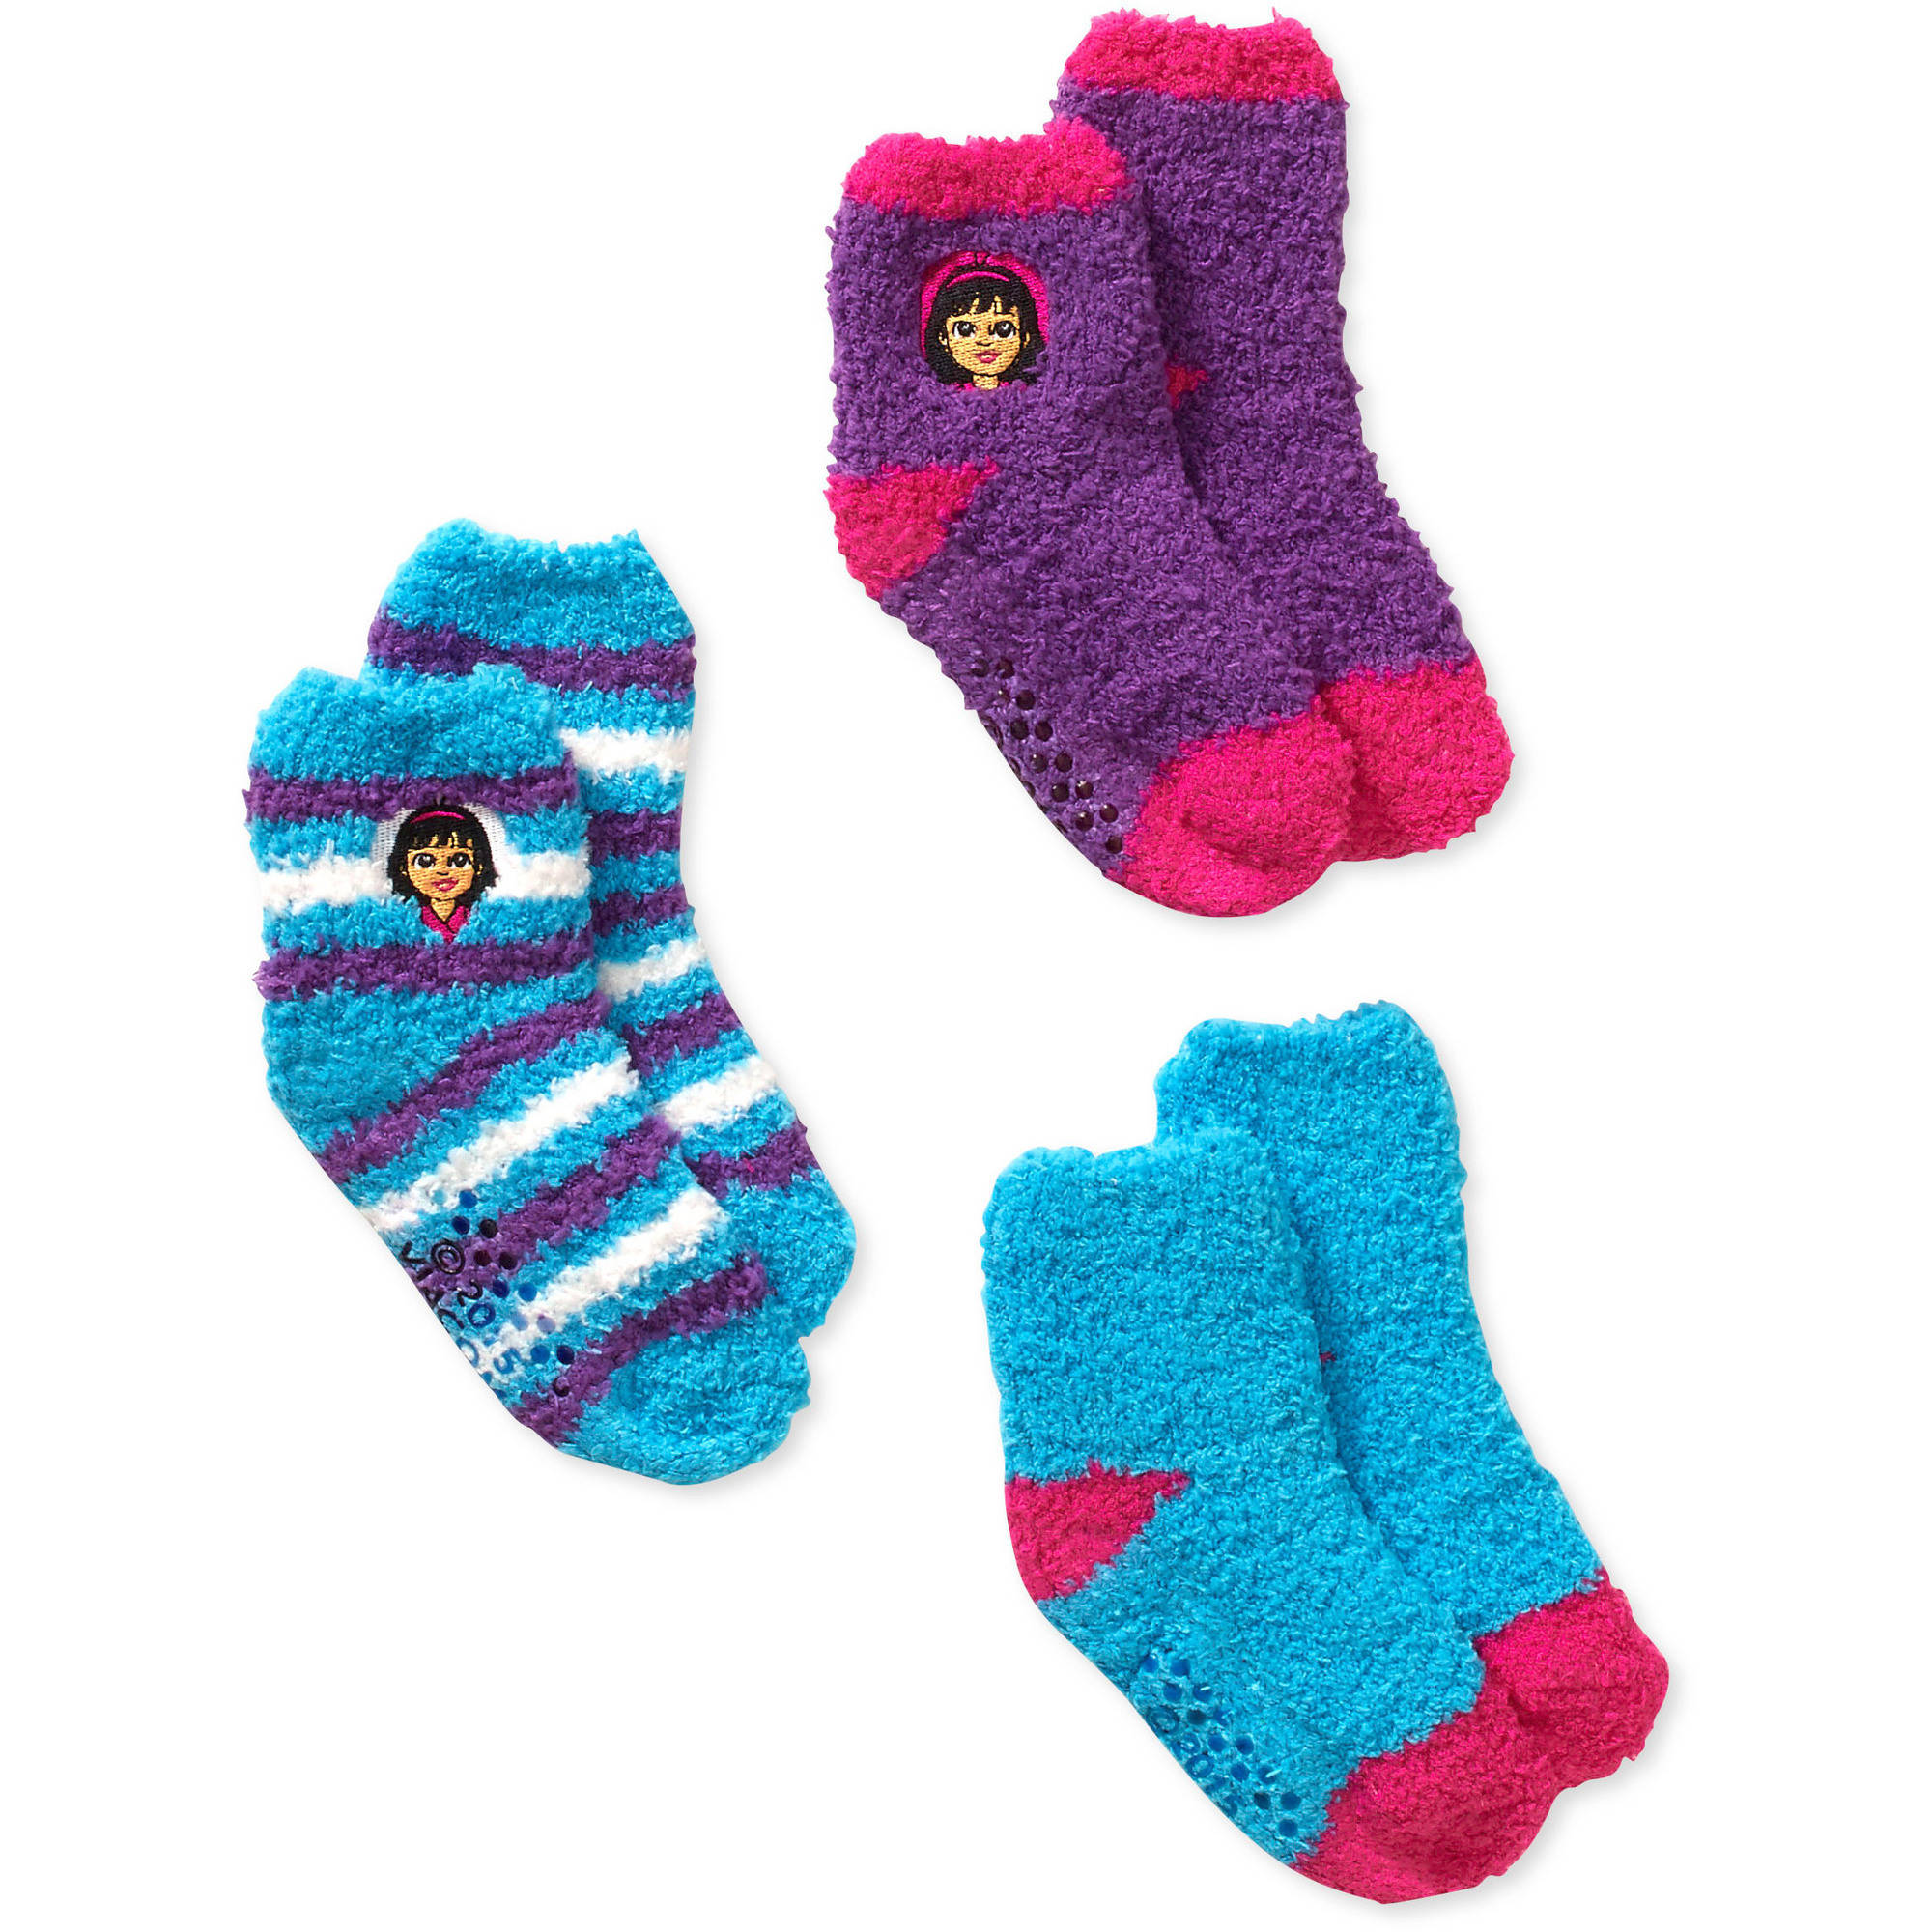 Dora and Friends BabyToddler Girl Quarter Softee Socks - 3 Pack